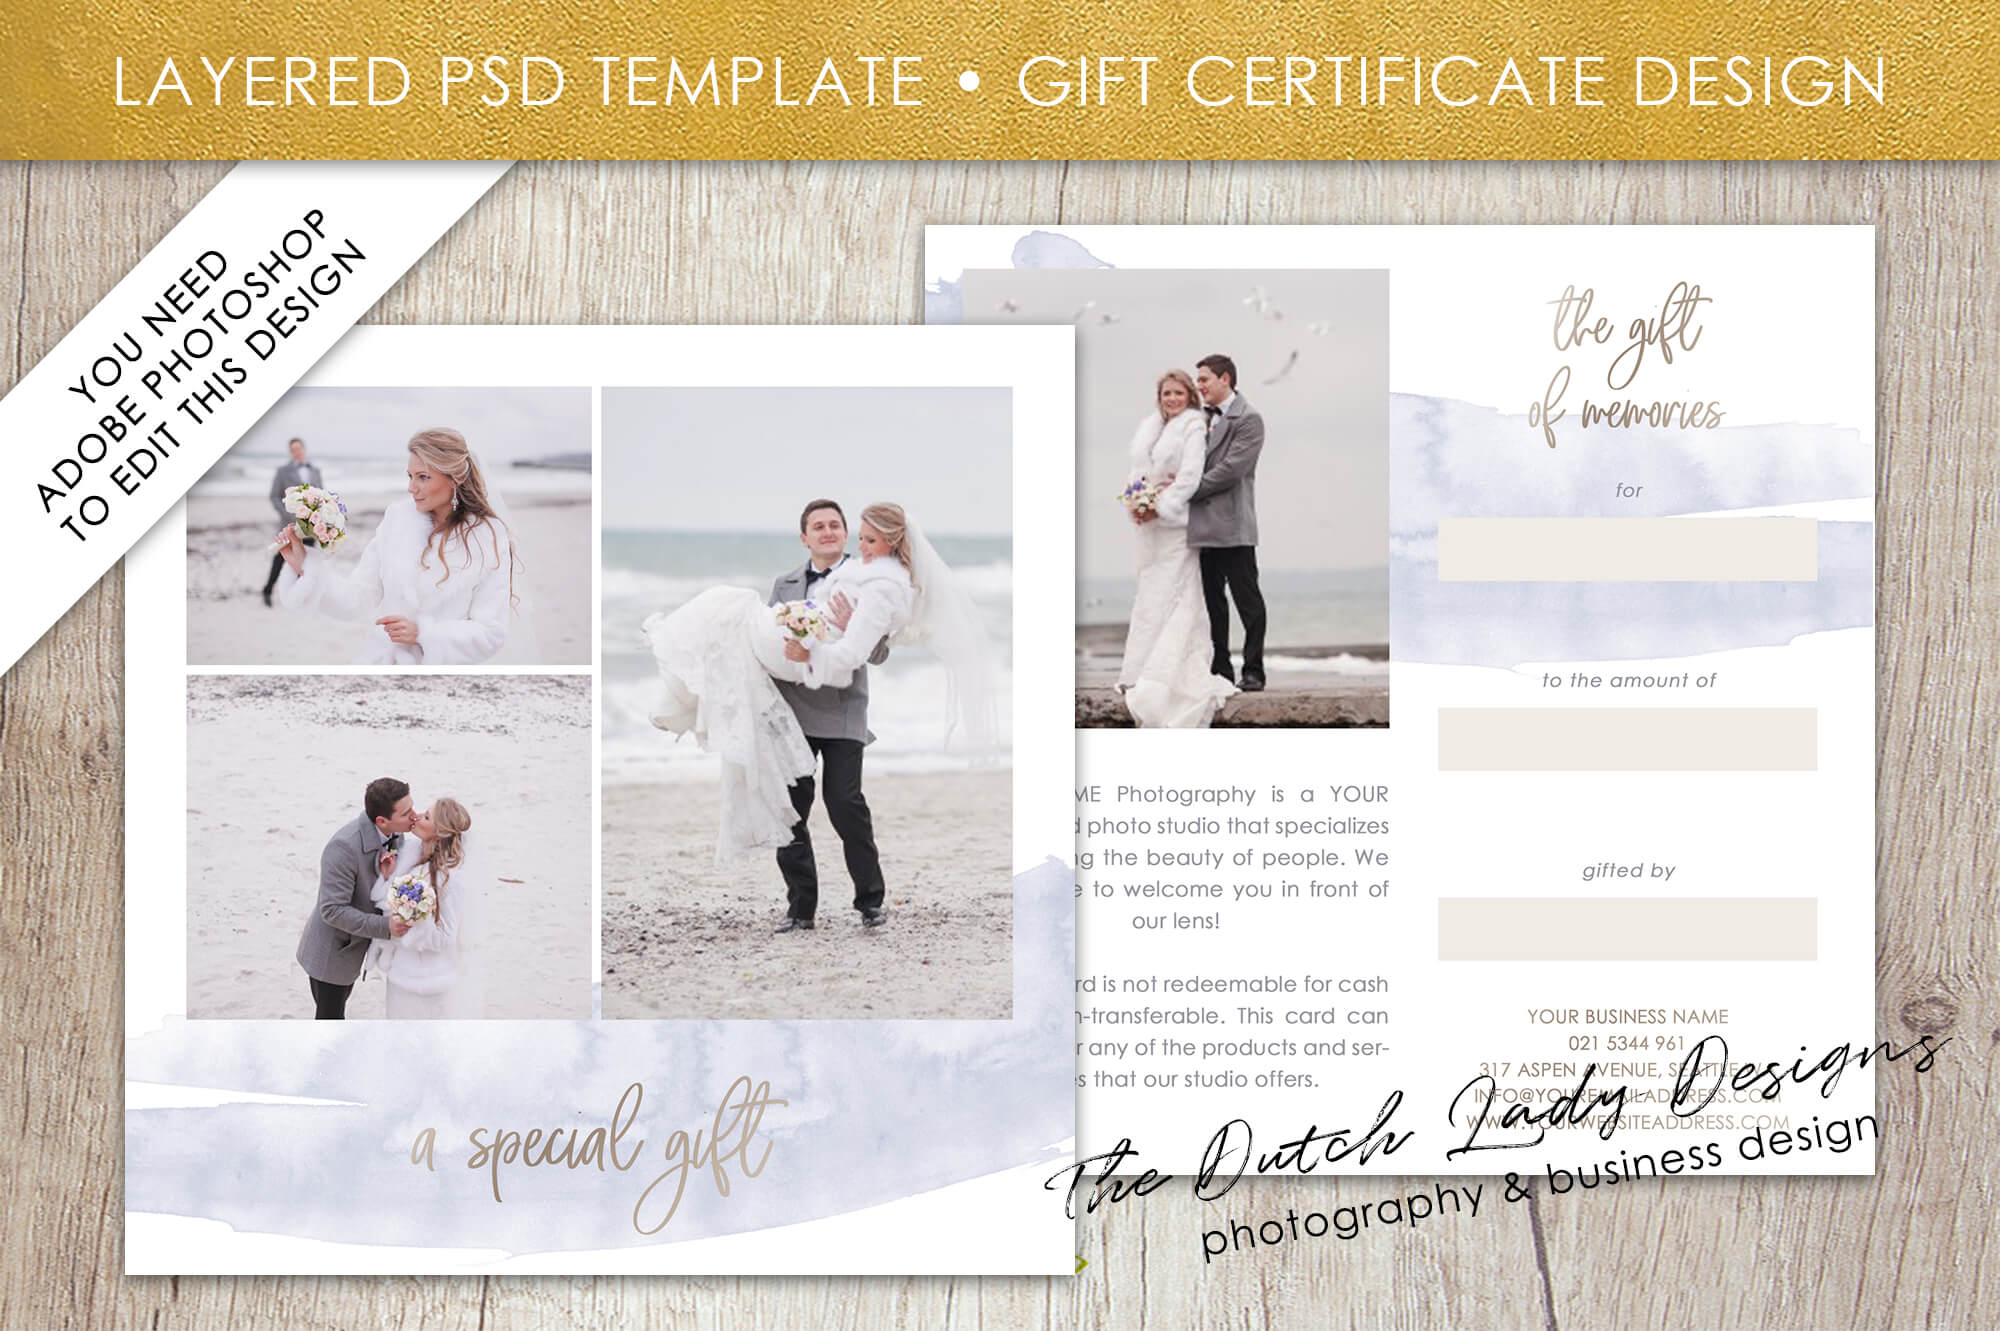 Photography Gift Certificate Template – Photo Gift Card – Layered .psd  Files – Design #42 For Gift Certificate Template Photoshop